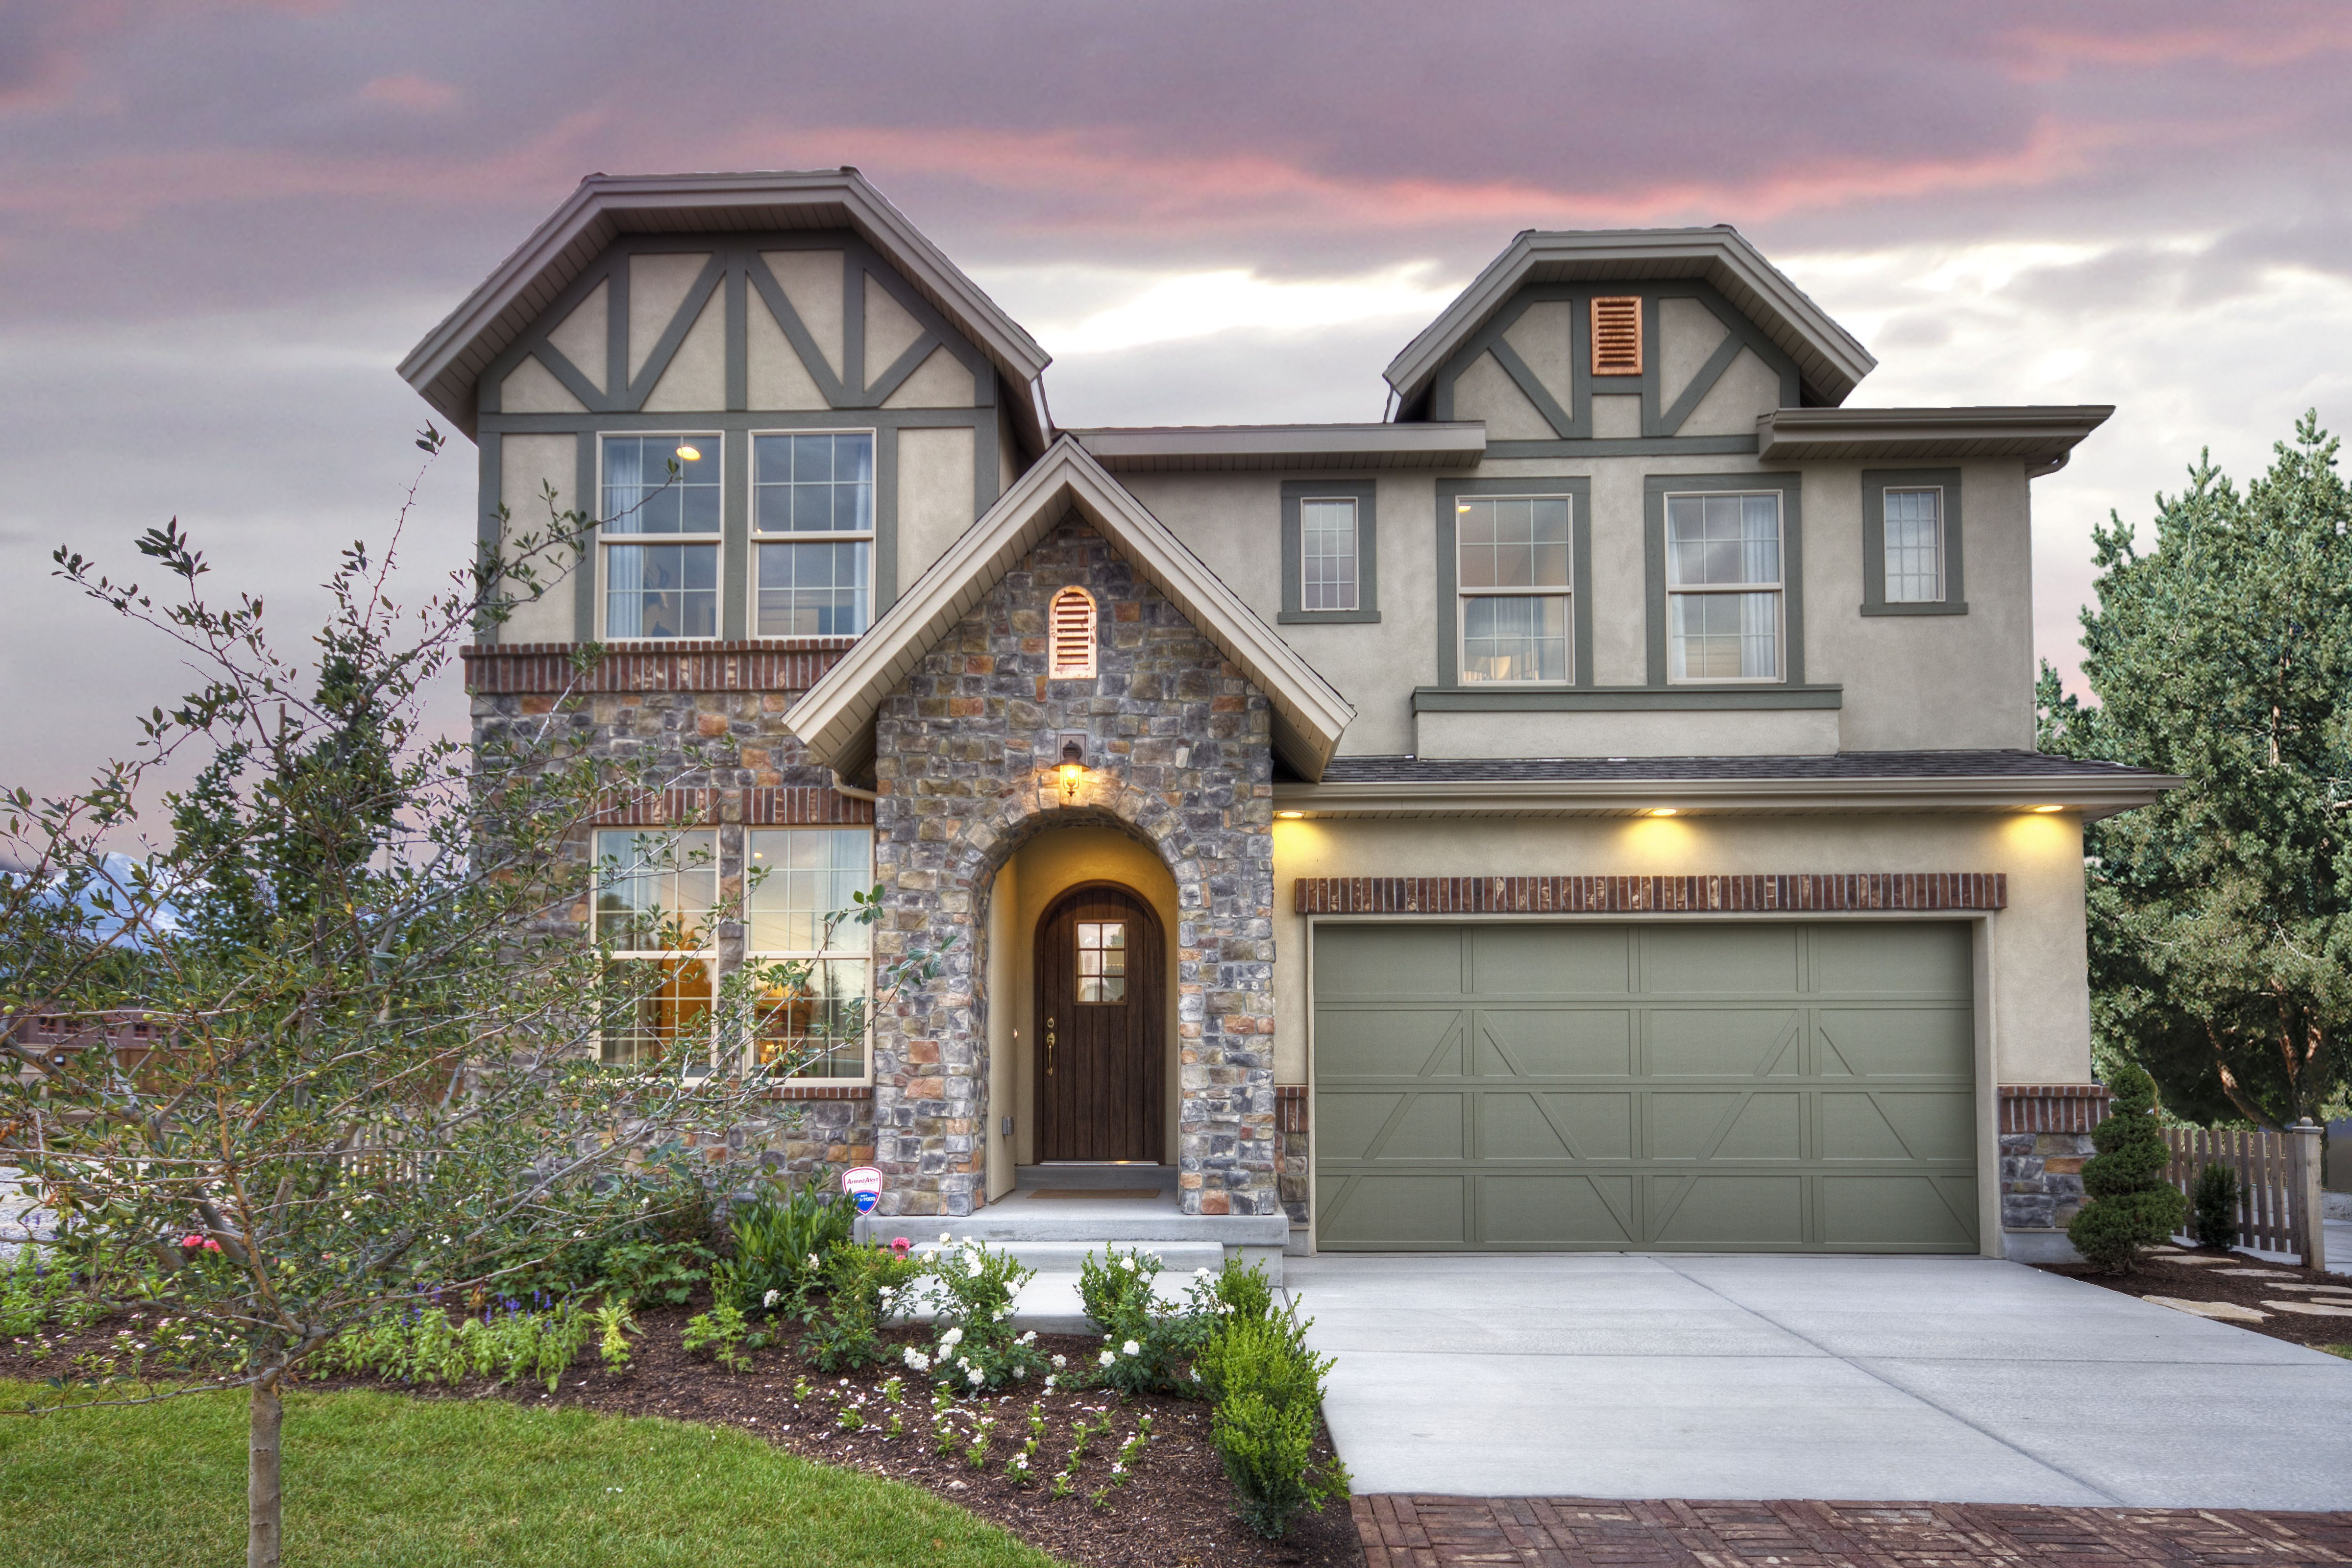 Home Design Utah Part - 43: Briarwood French Country Home Design For New Homes In Utah Love The Copper  Accents And Cottage